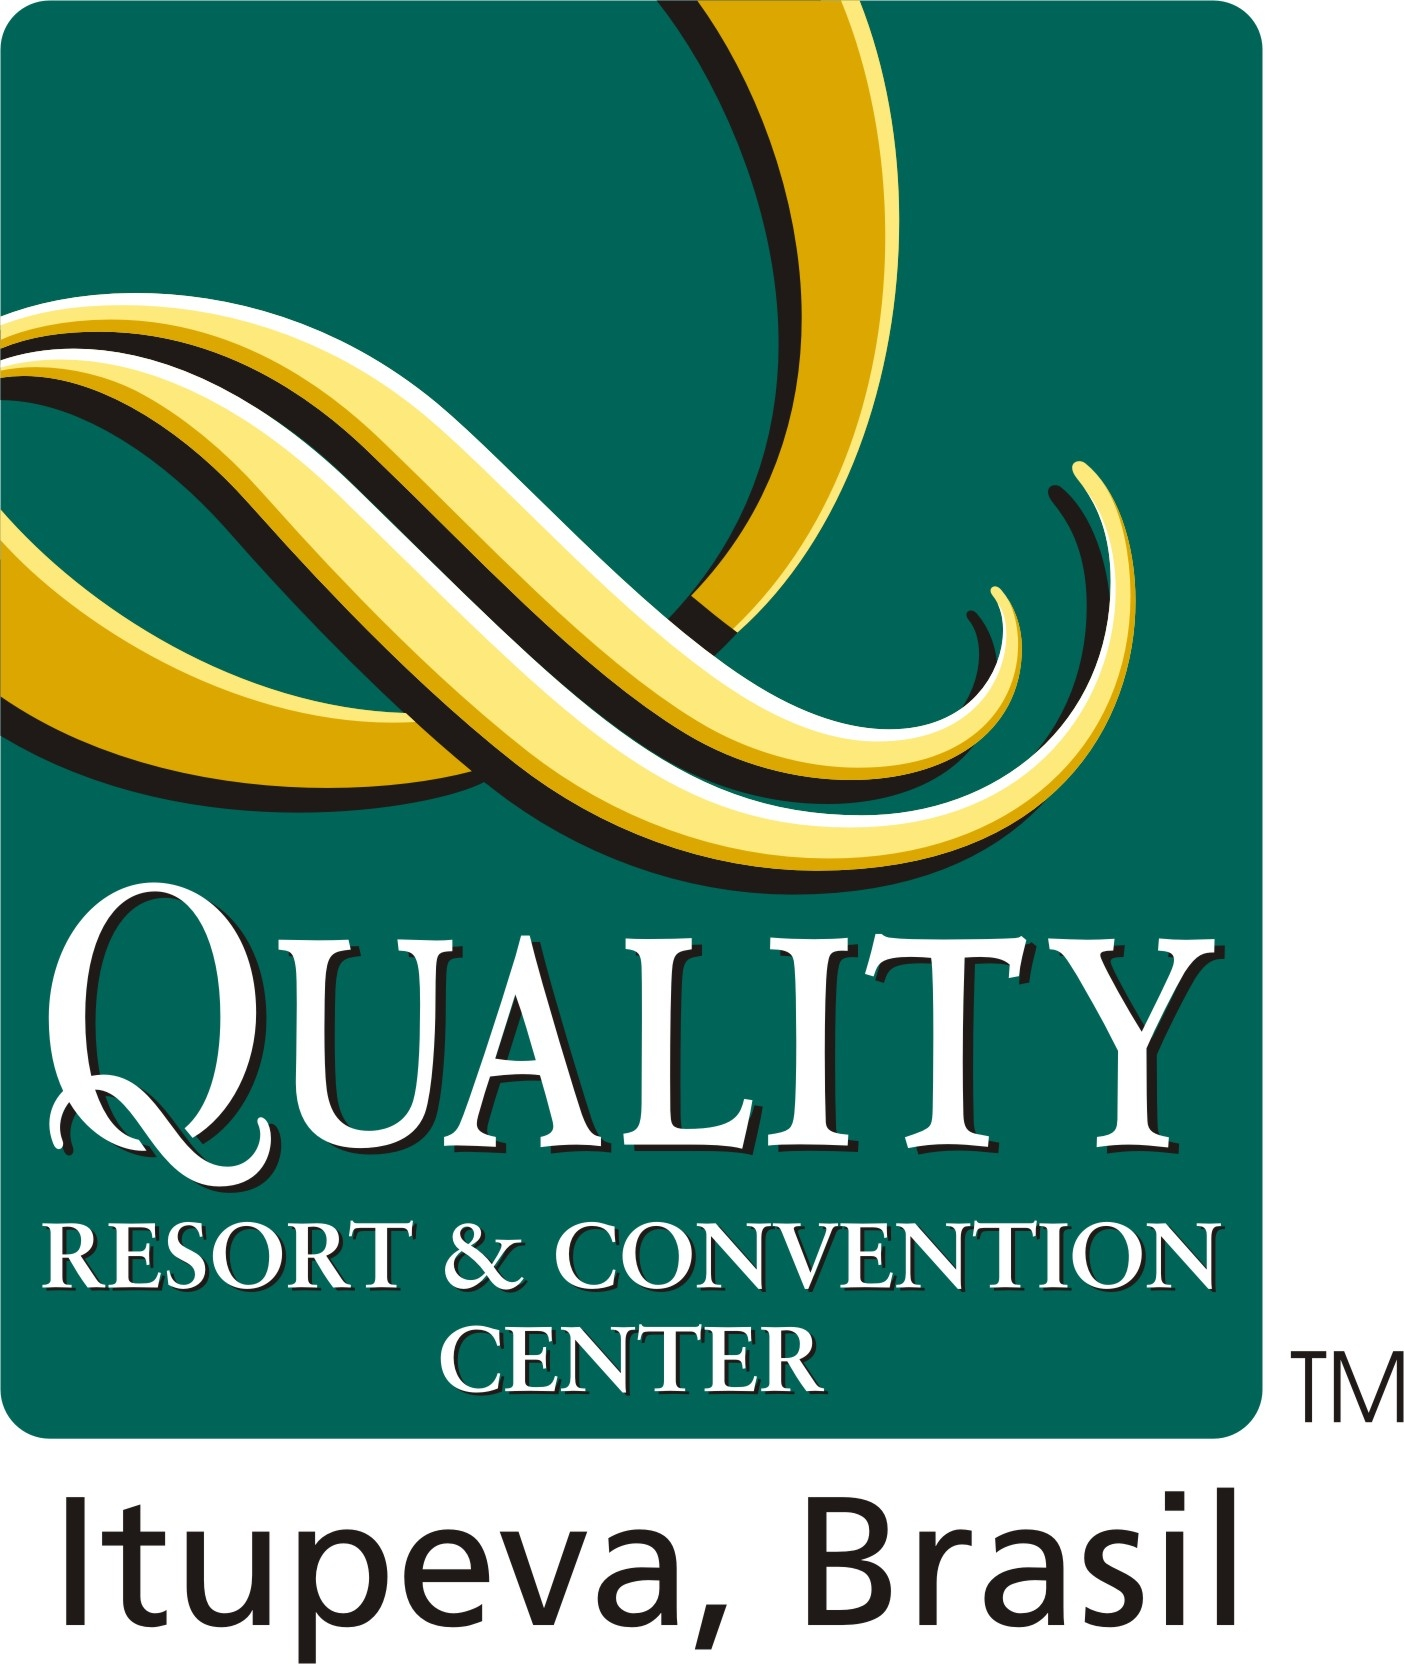 Quality Resort & Convention Center Itupeva